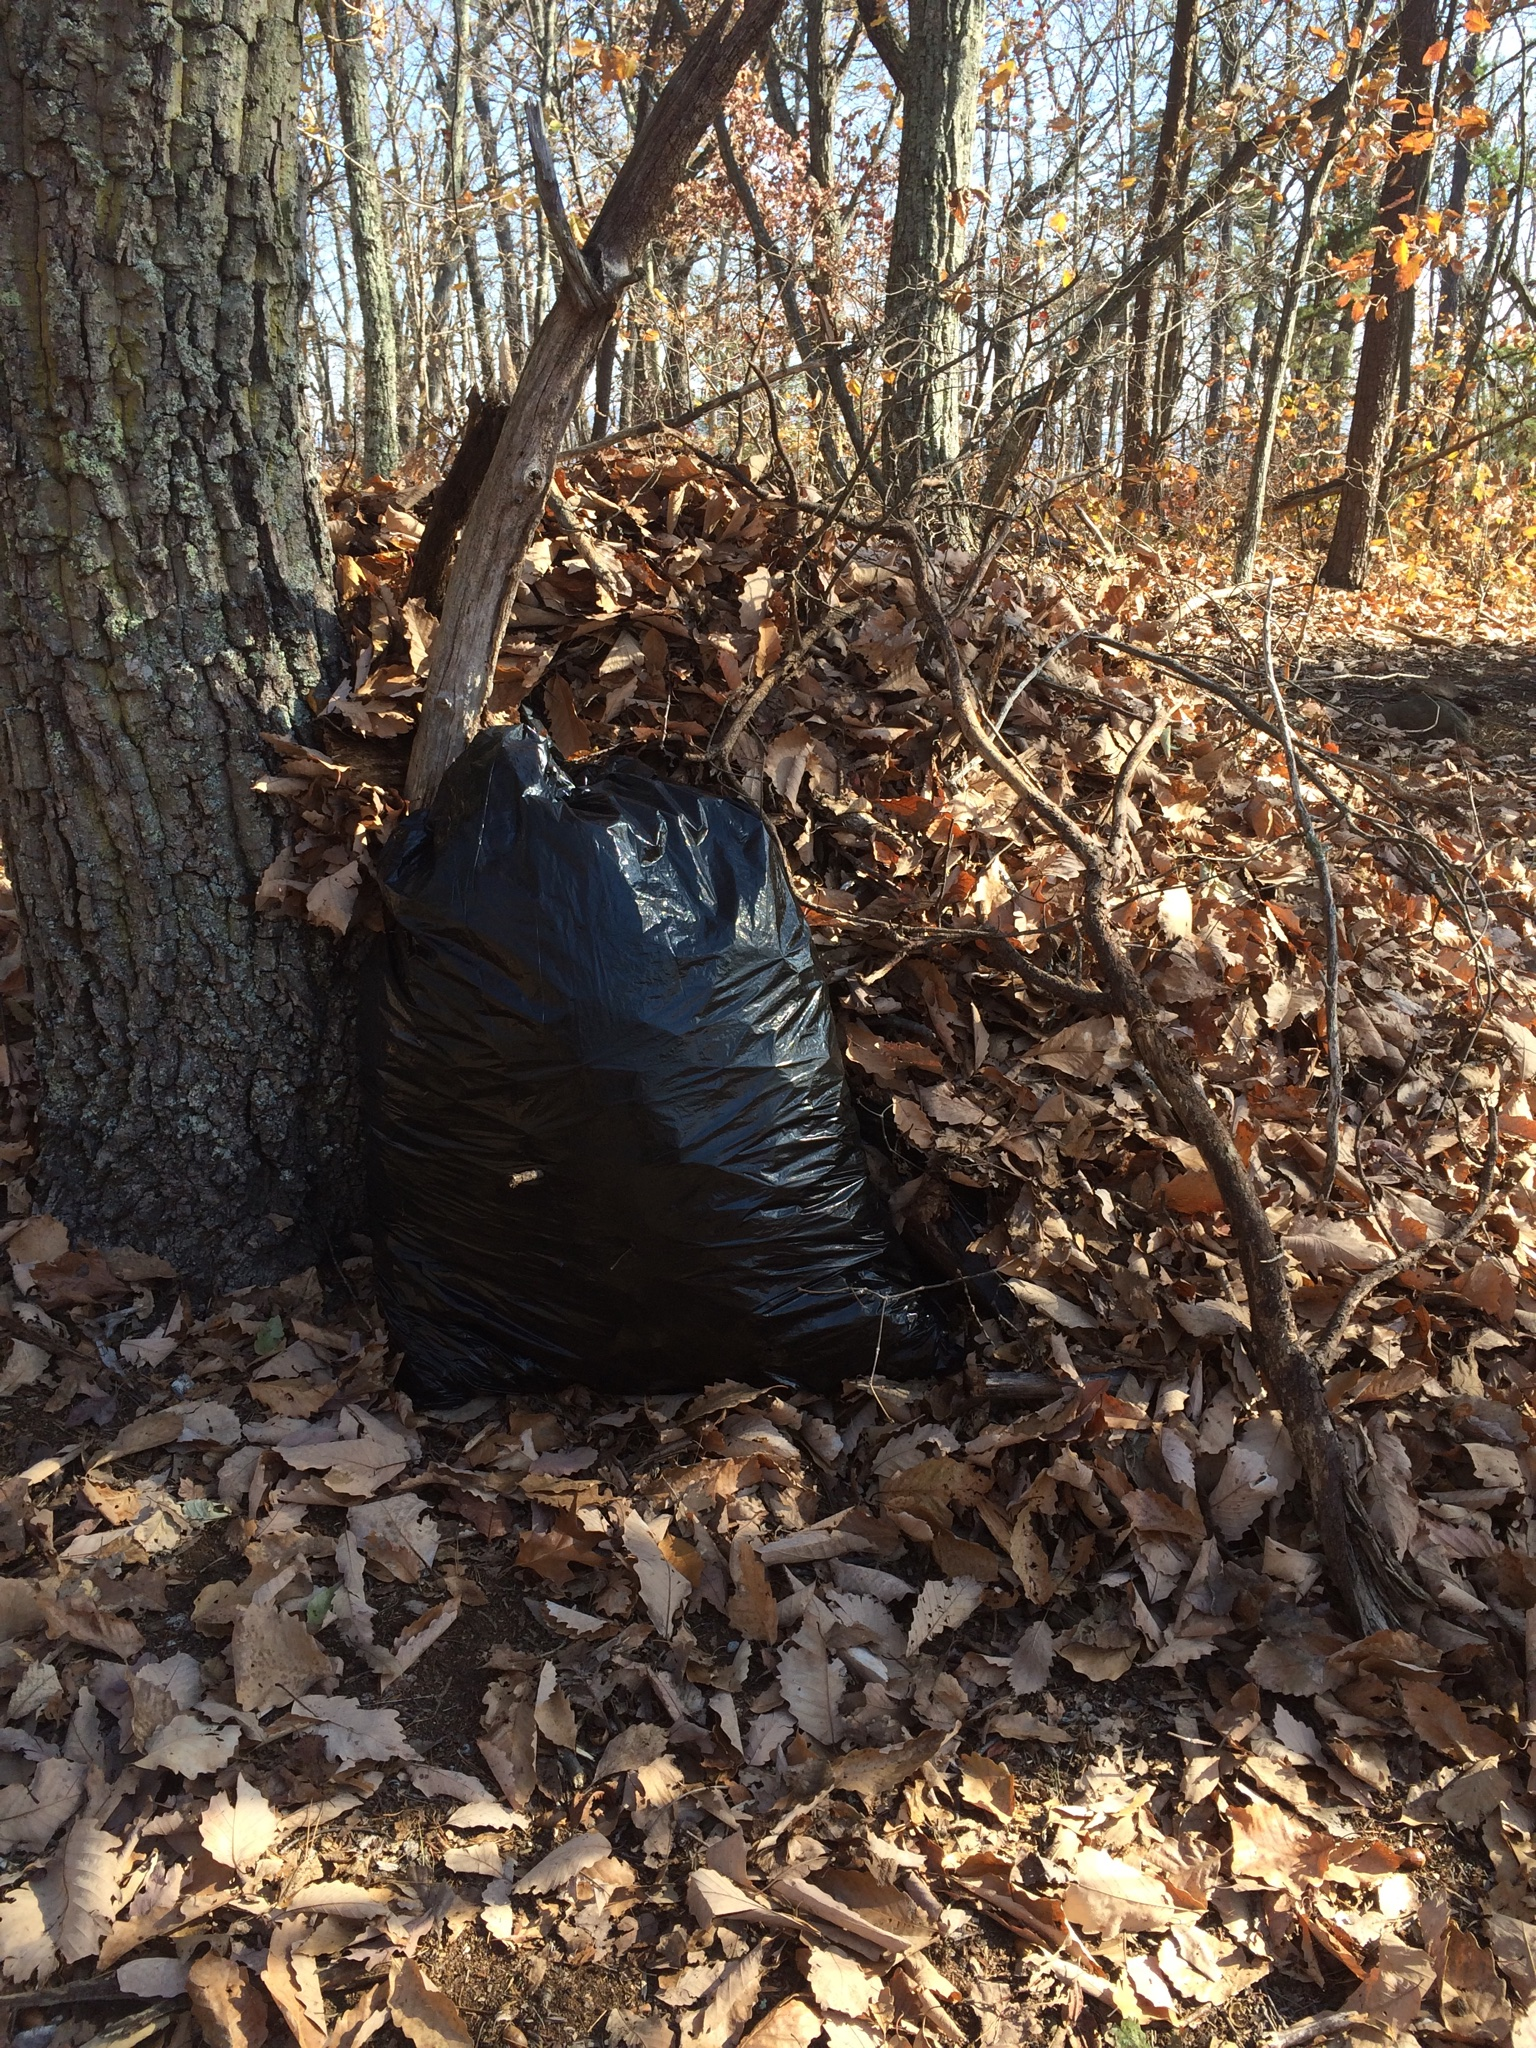 Our bivy with the front door in. (Yes the bag of leaves served as our door.)